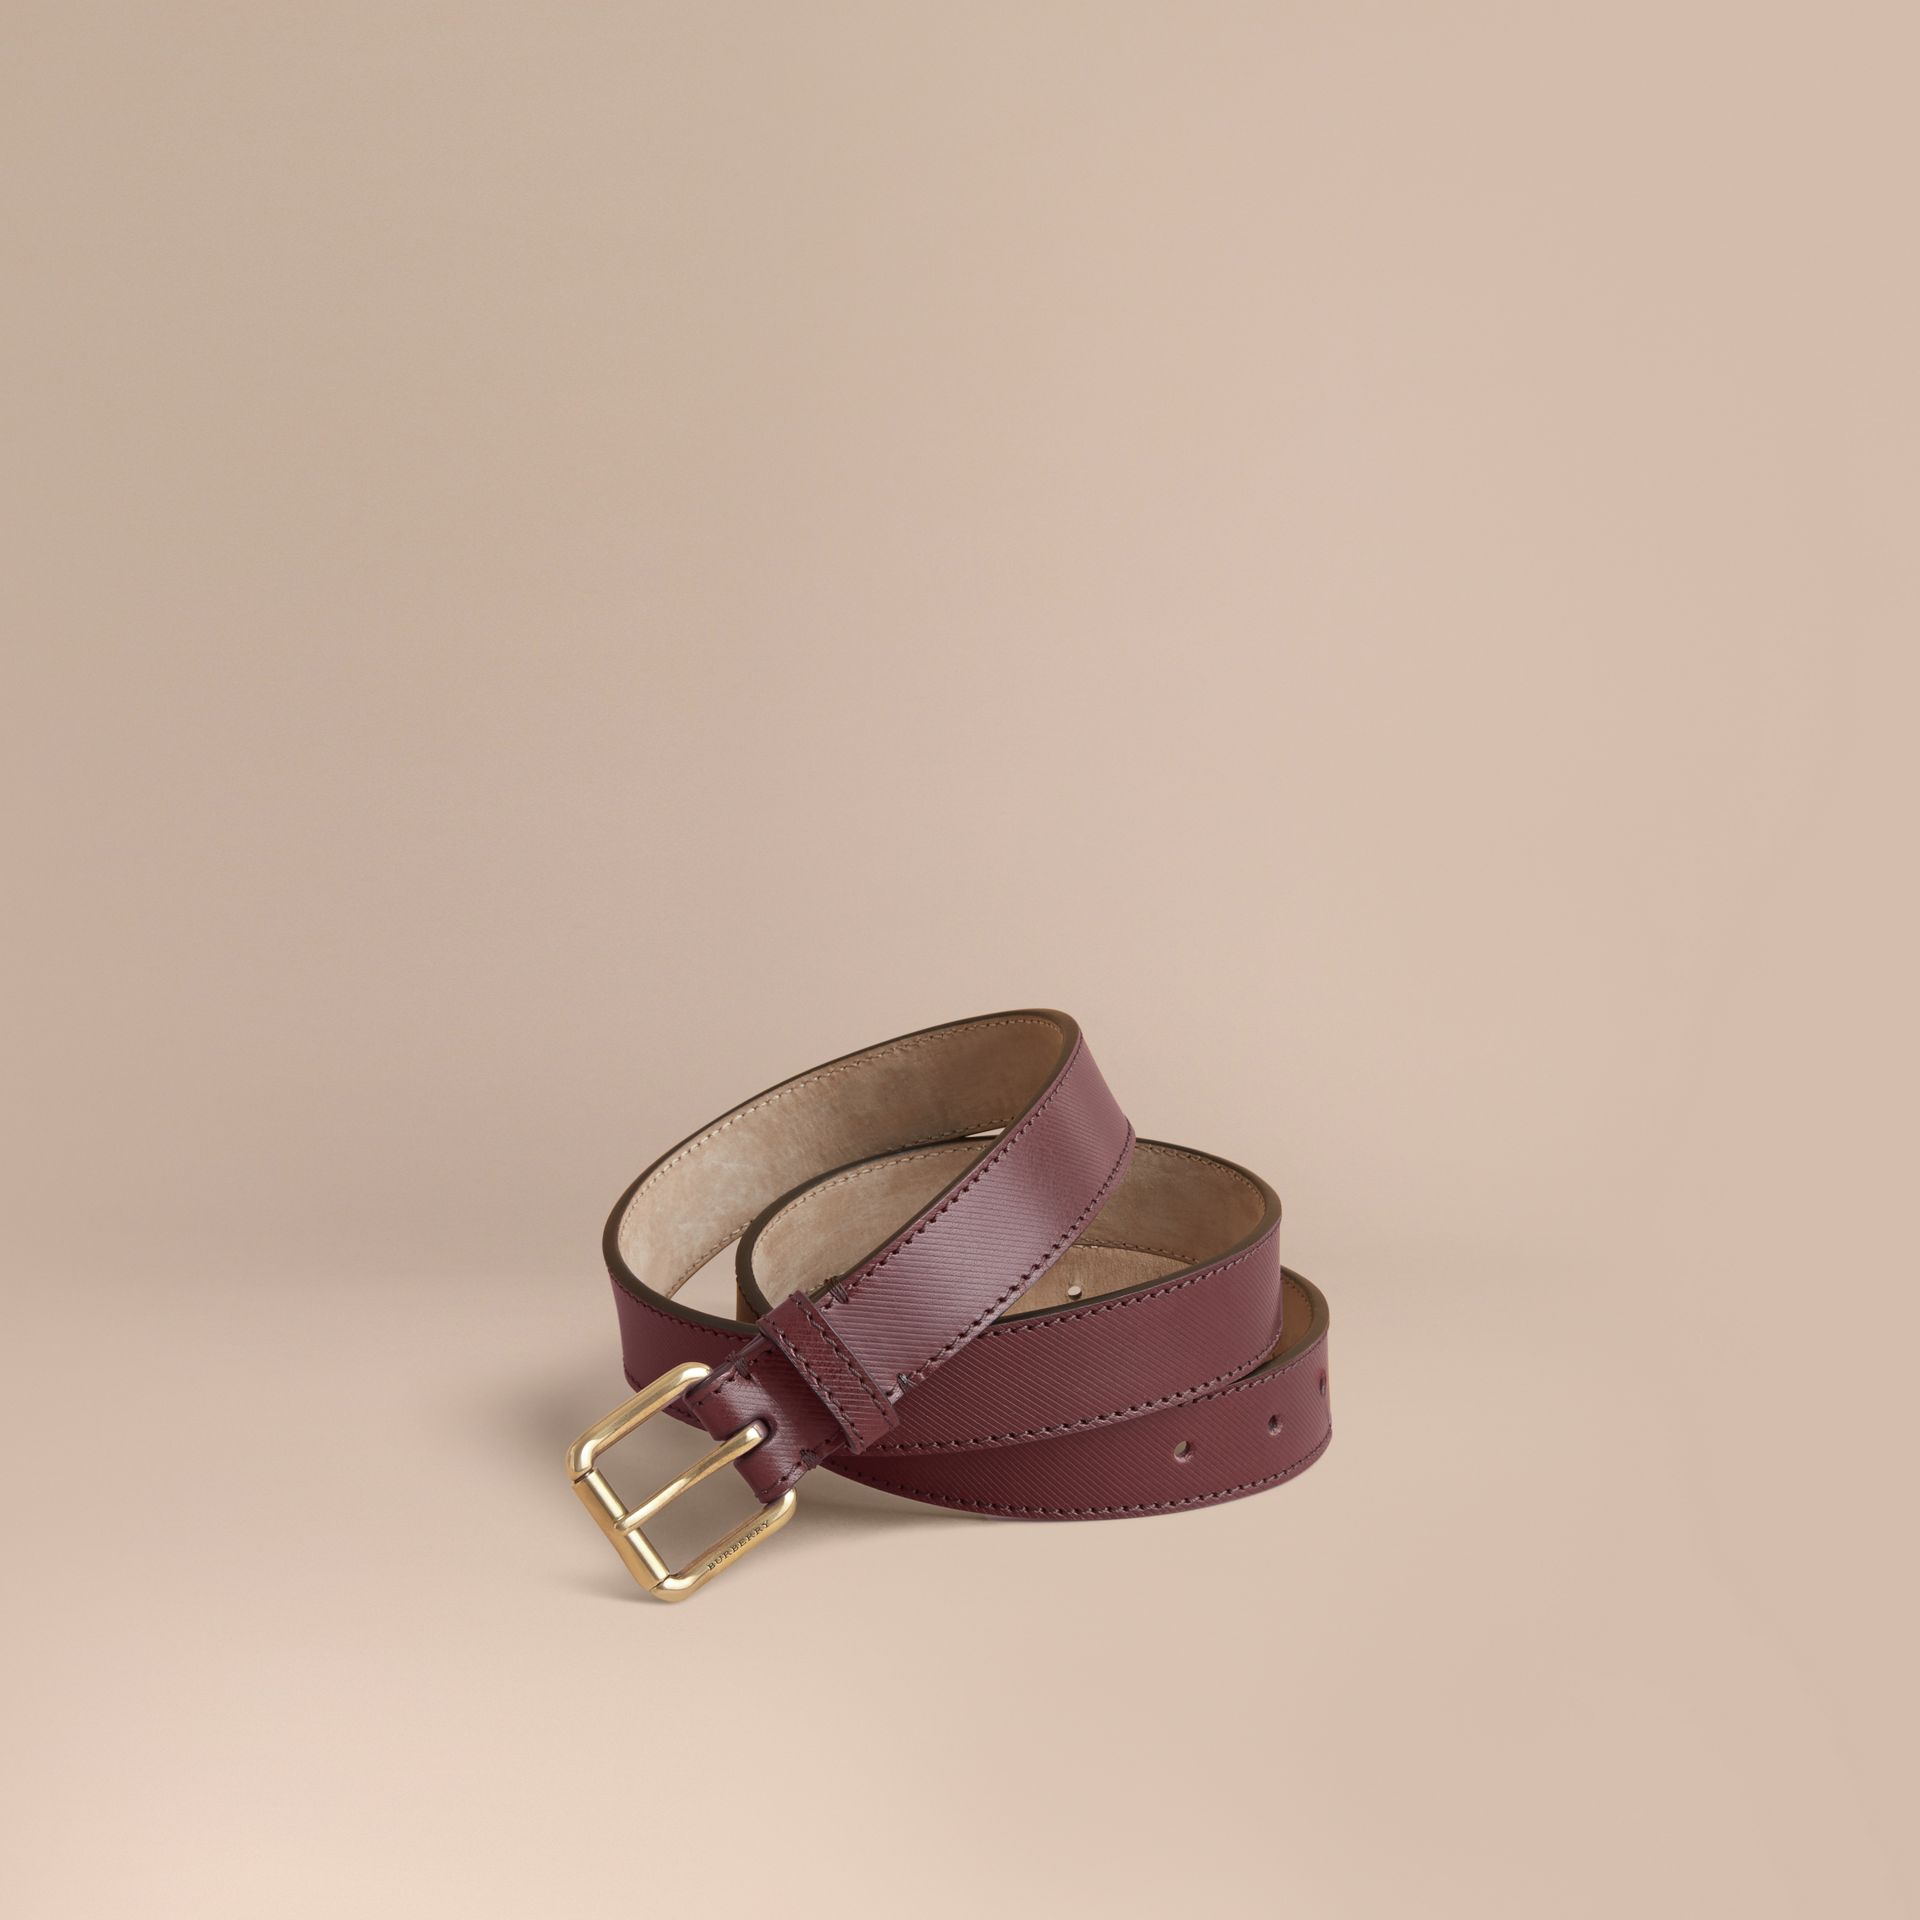 Trench Leather Belt in Wine - Men | Burberry - gallery image 1